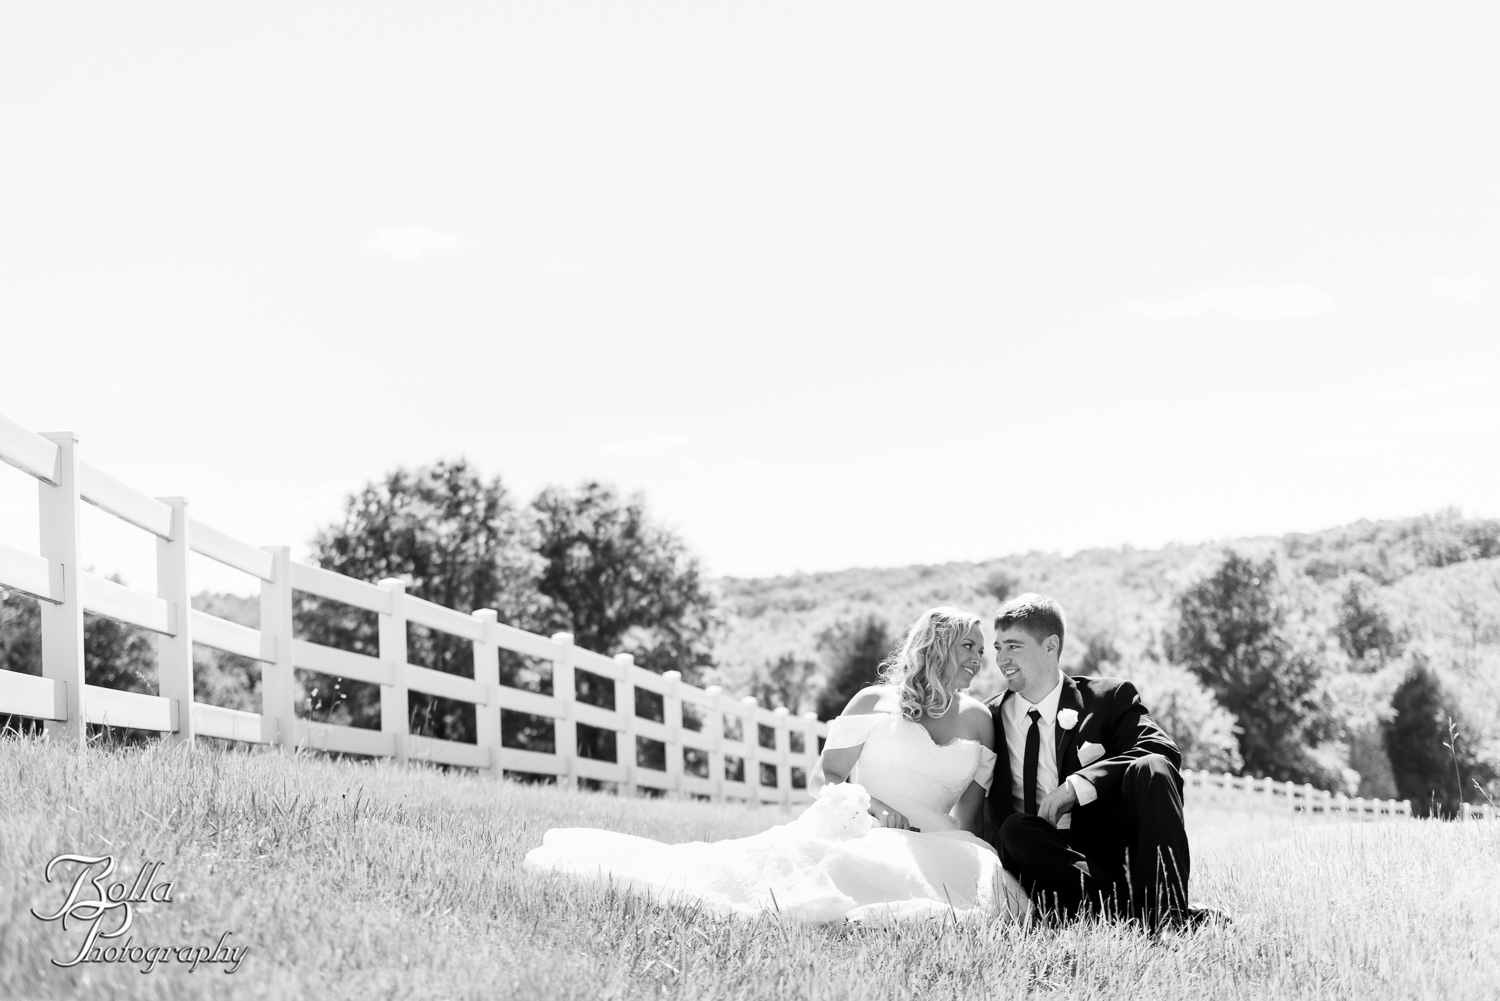 Bolla_Photography_St_Louis_wedding_photographer_Innsbrook_Resort-0002.jpg